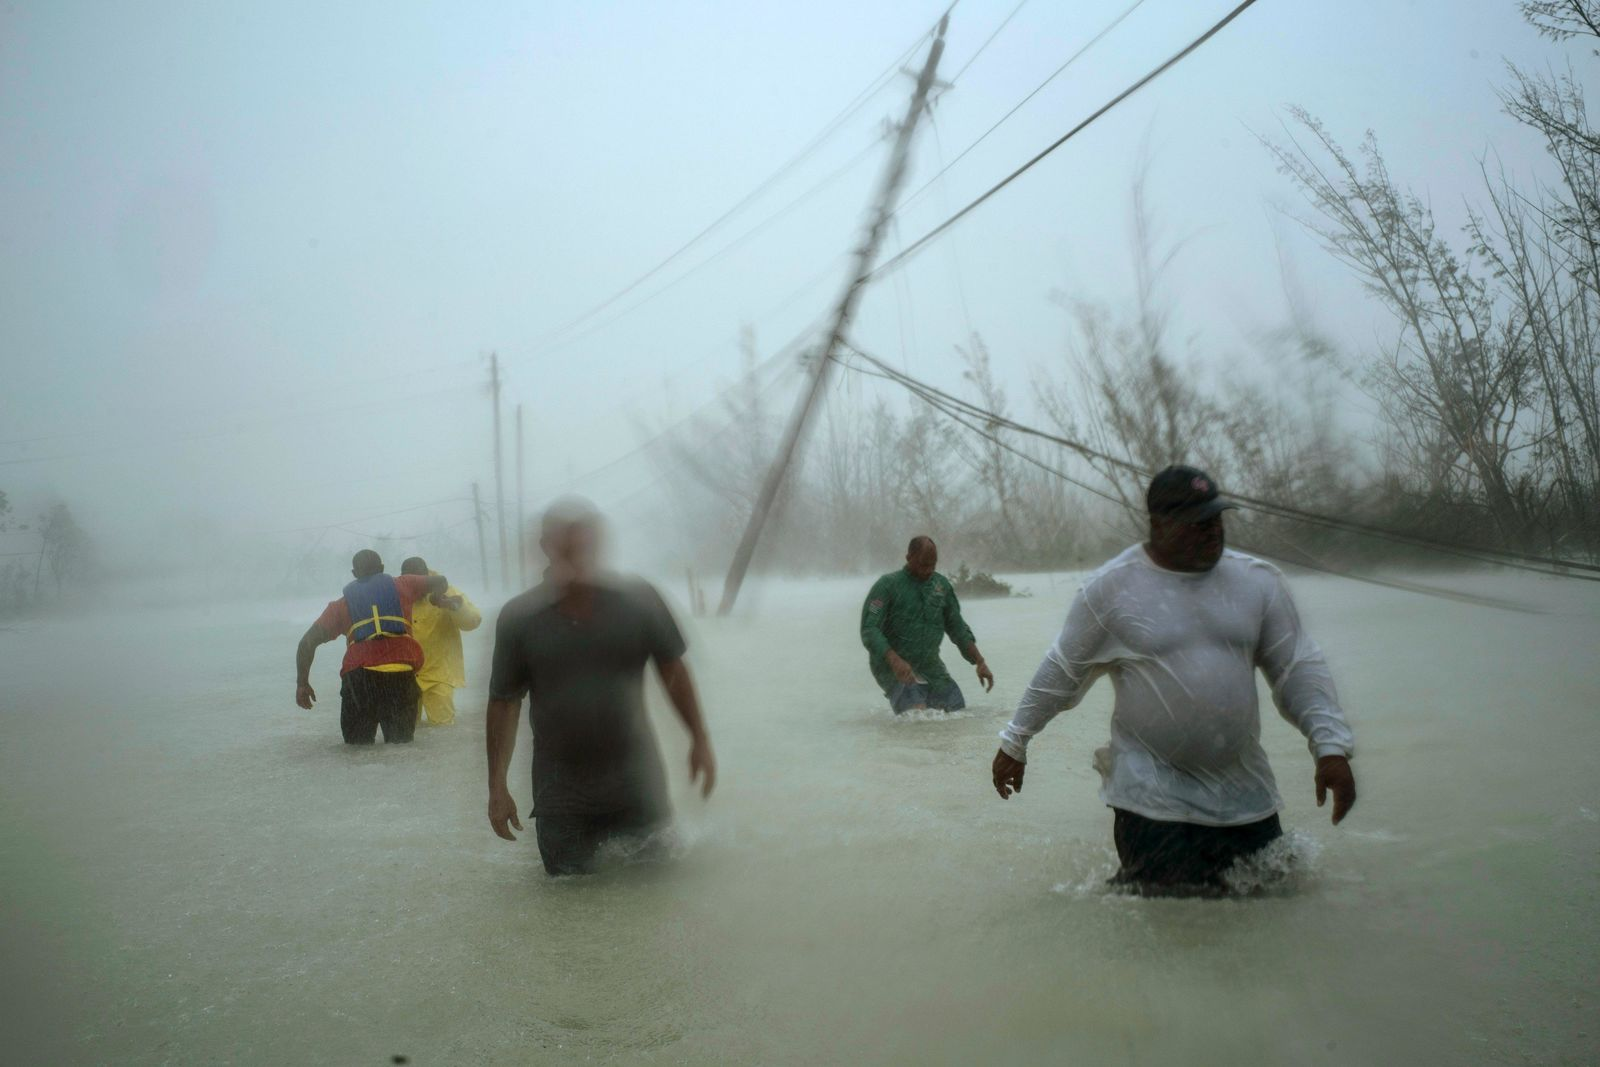 Volunteers walk under the wind and rain from Hurricane Dorian through a flooded road as they work to rescue families near the Causarina bridge in Freeport, Grand Bahama, Bahamas, Tuesday, Sept. 3, 2019. (AP Photo/Ramon Espinosa)